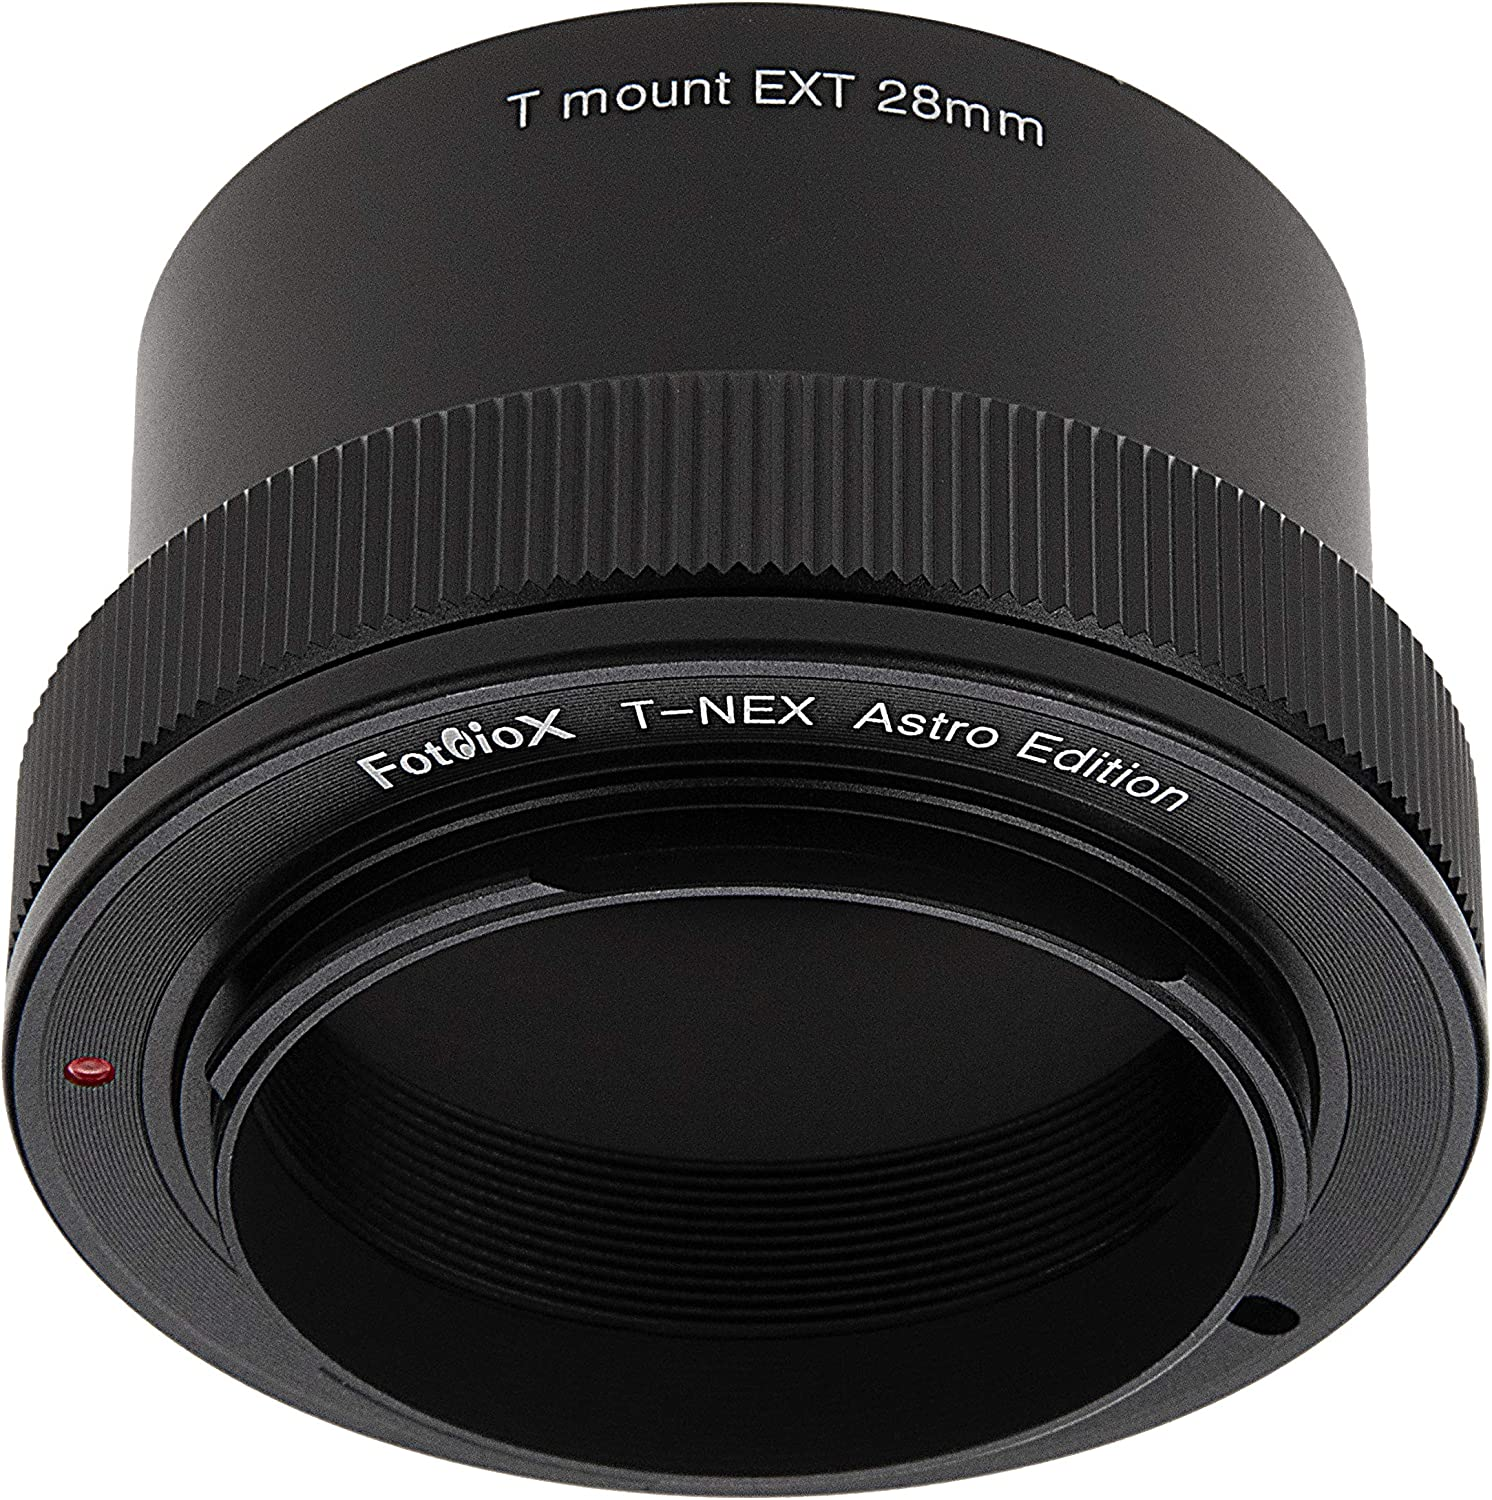 Compatible with T-Mount Screw Mount Telescopes to Sony Alpha E-Mount Cameras for Astronomy Fotodiox Lens Adapter Astro Edition T//T-2